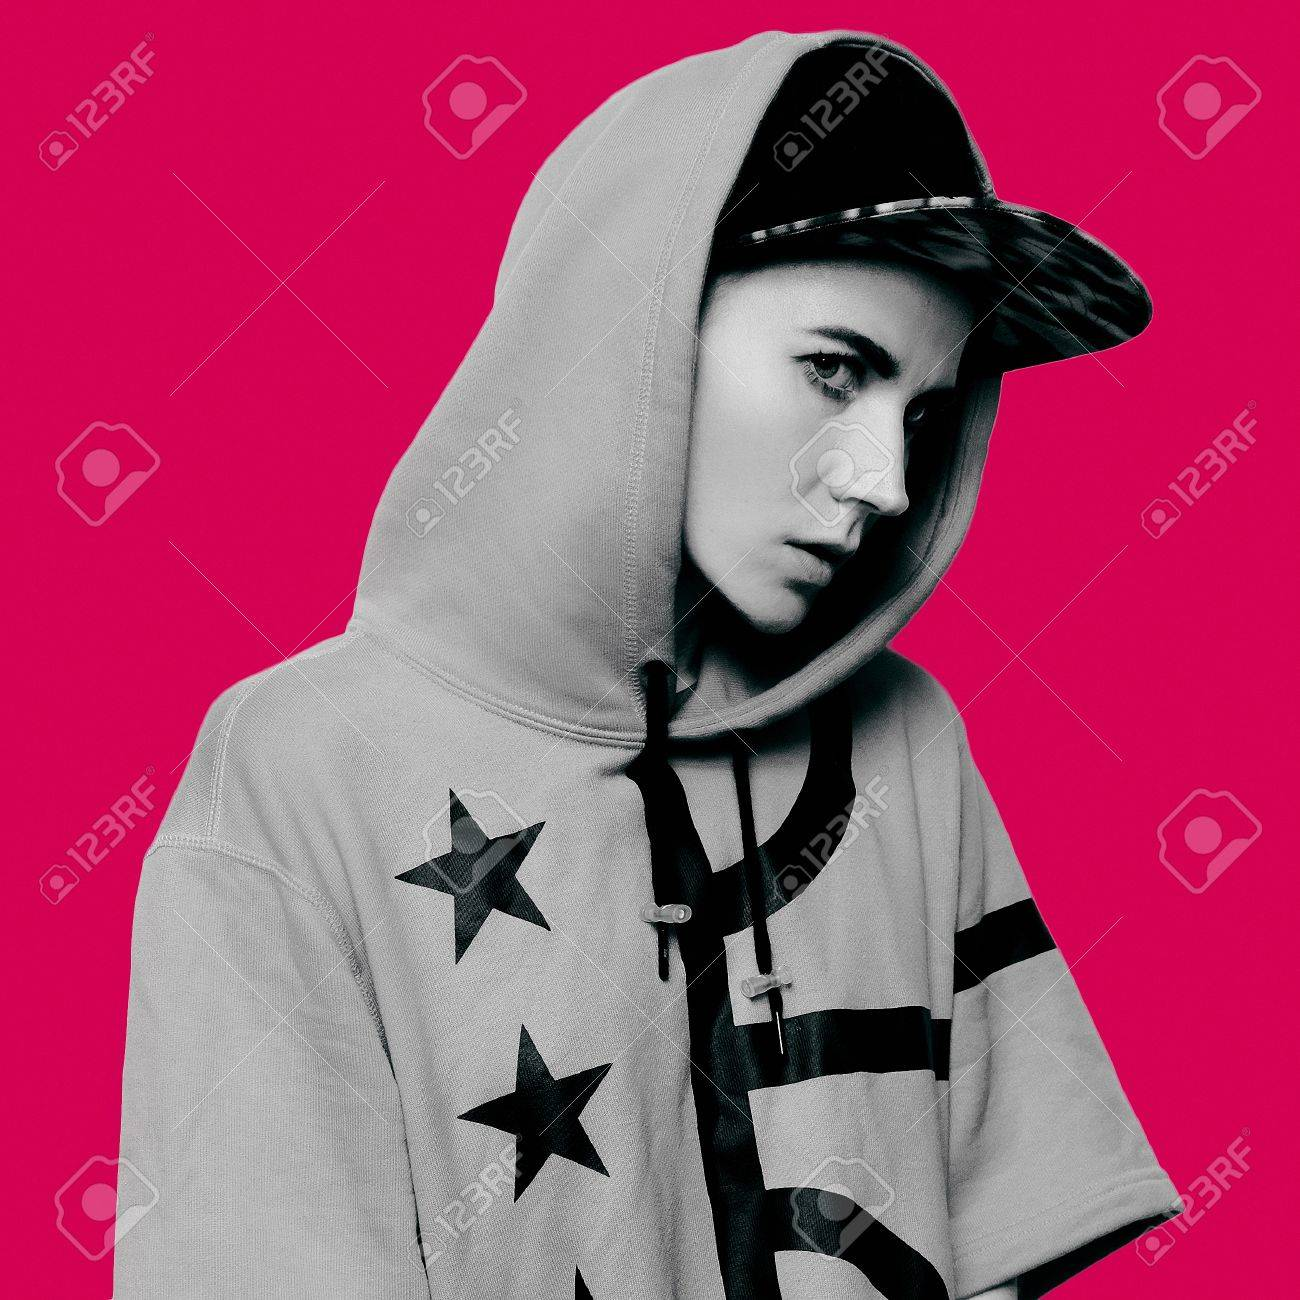 Hip Hop Girl Tomboy Cap And Stylish Clothes Urban Style Swag